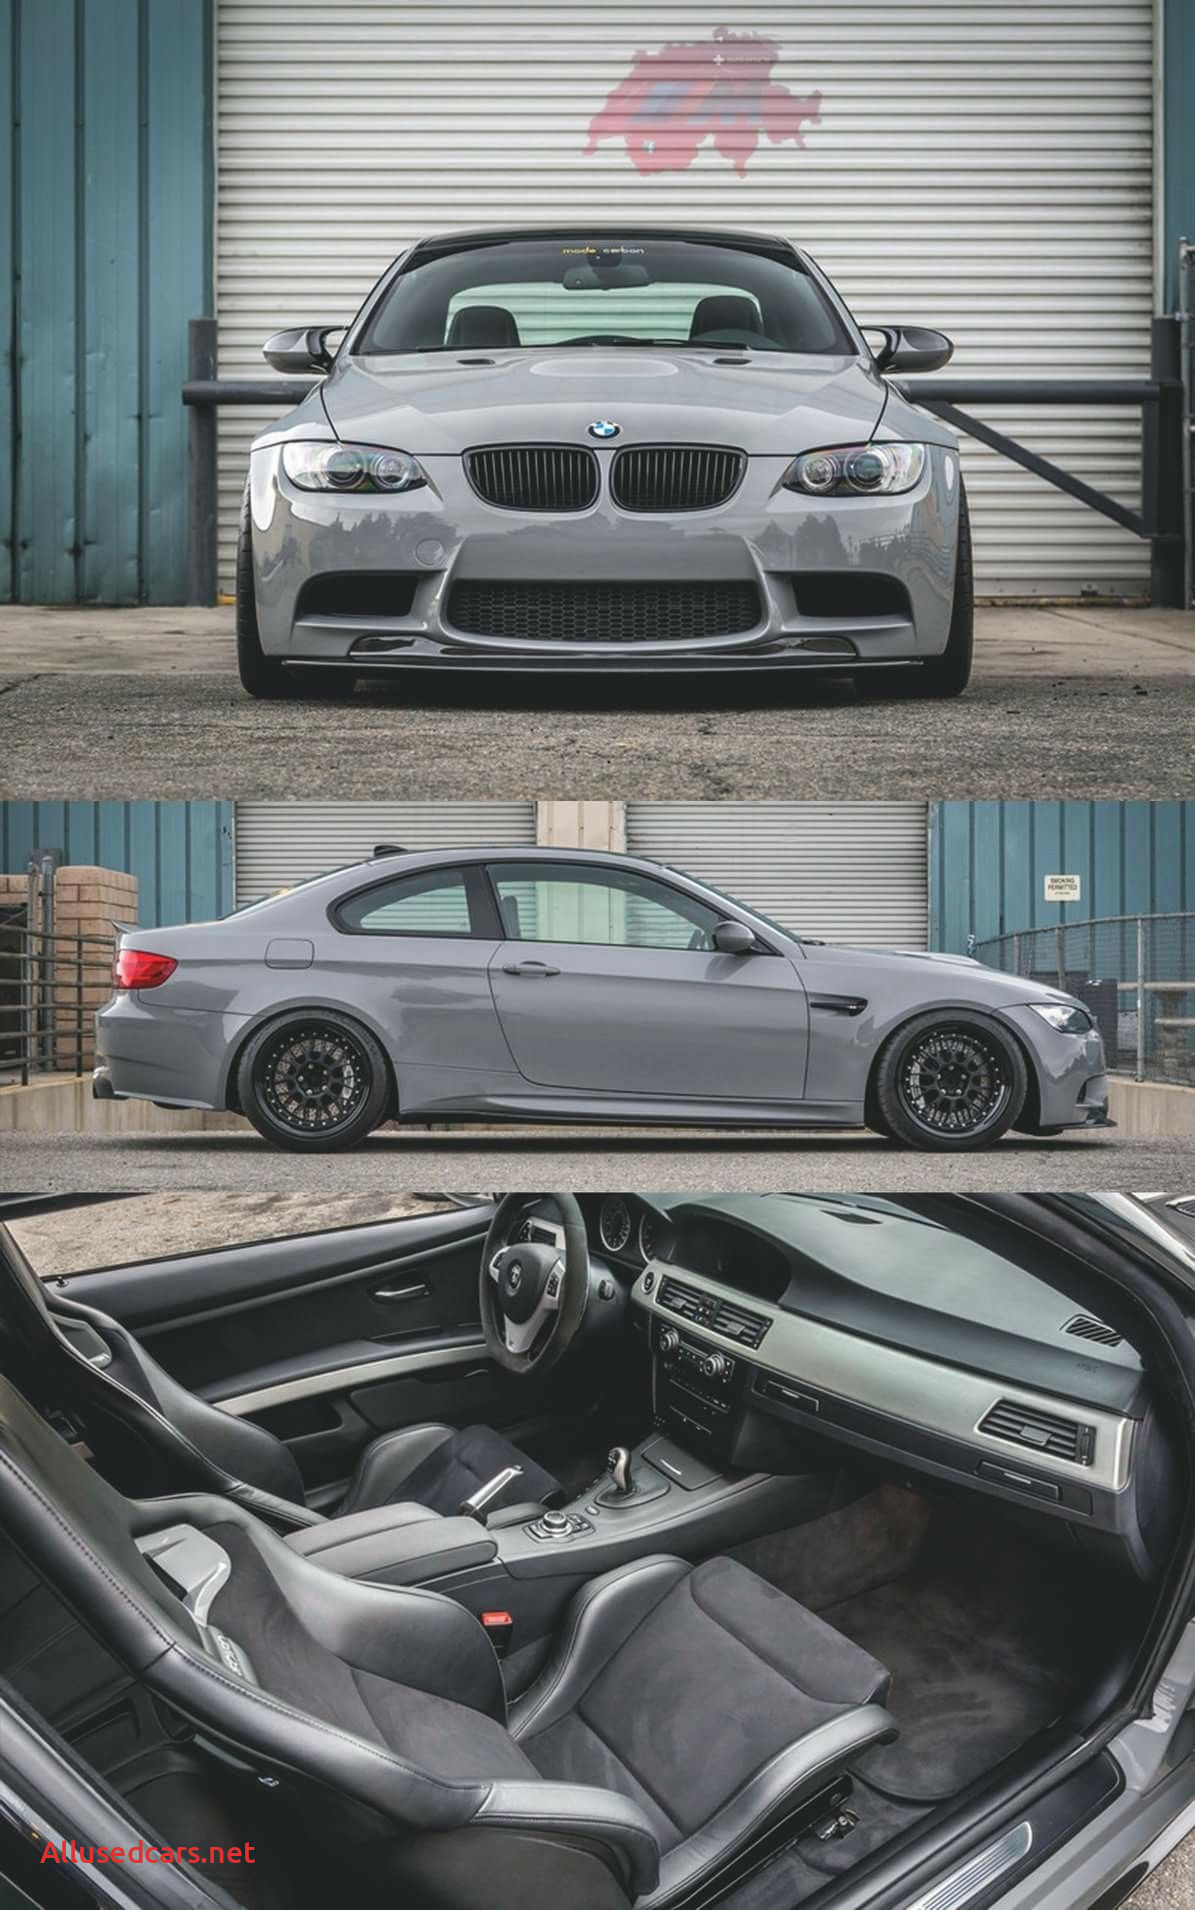 2009 Bmw 335i Awesome Bmw E92 M3 Grey